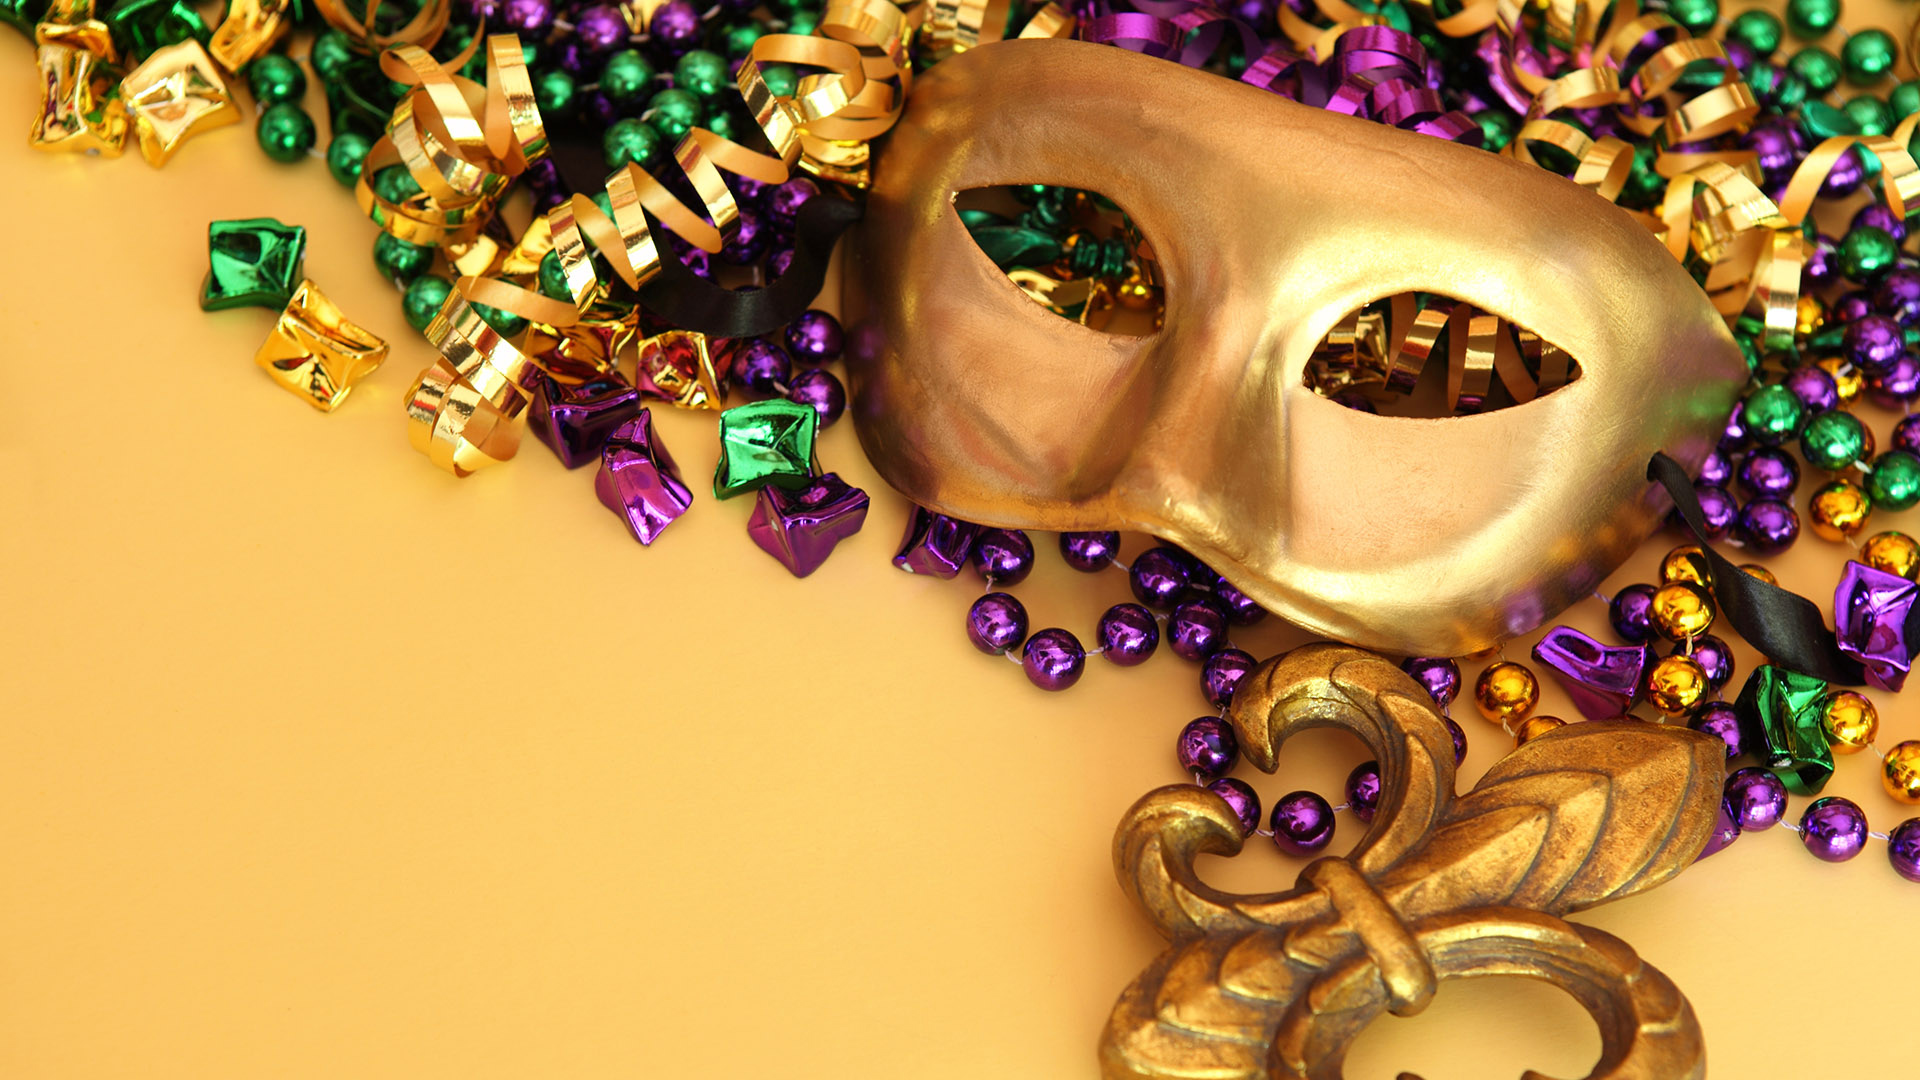 Mardi Gras Wallpapers and Background Images   stmednet 1920x1080